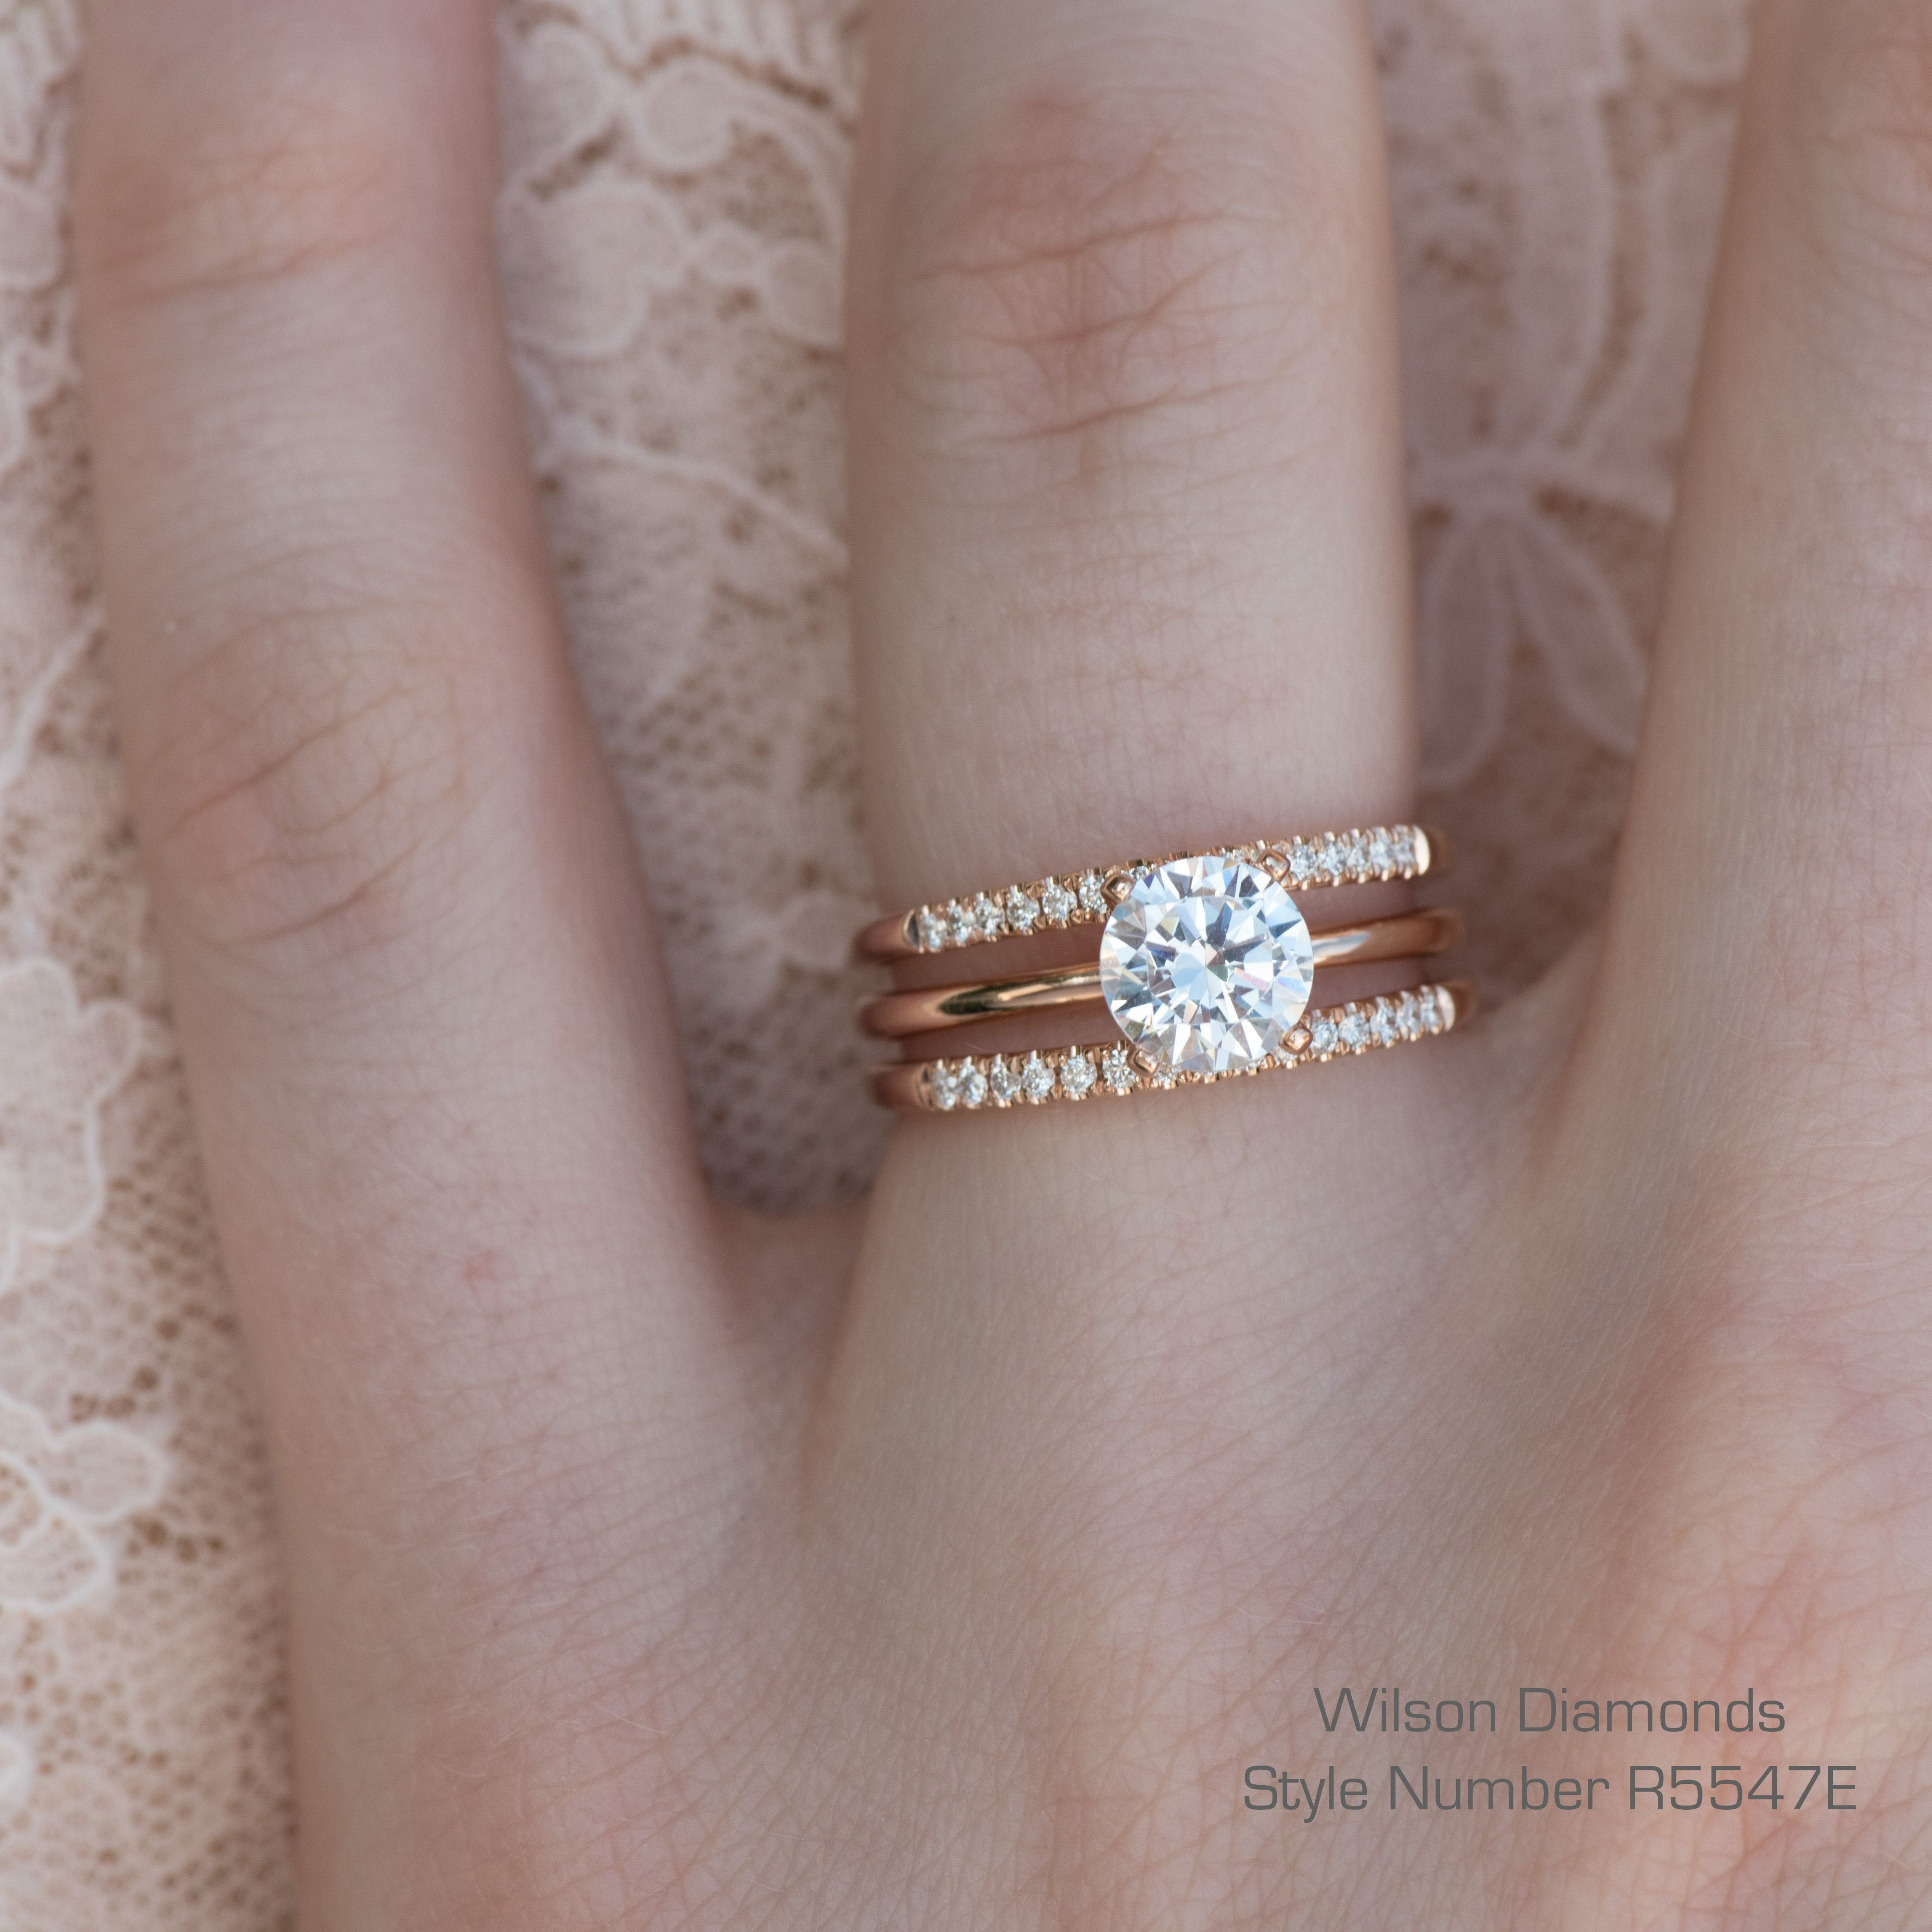 3 rings in 1 A solitaire with two matching pave wedding bands